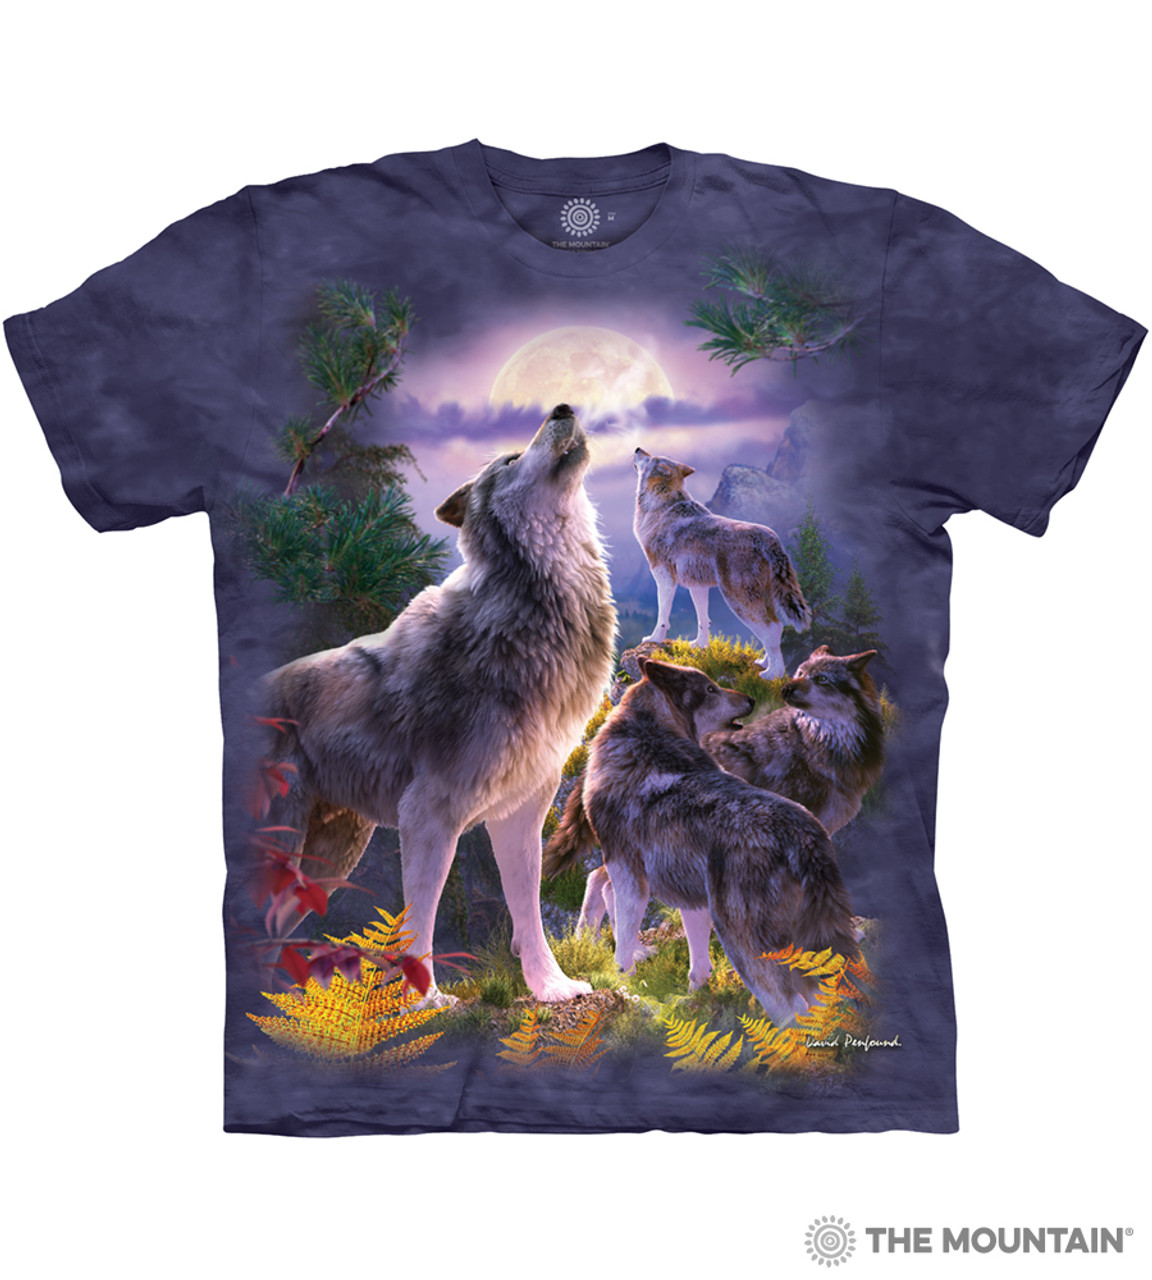 6d4a2110bceda The Mountain Adult Unisex T-Shirt - Wolfpack Moon